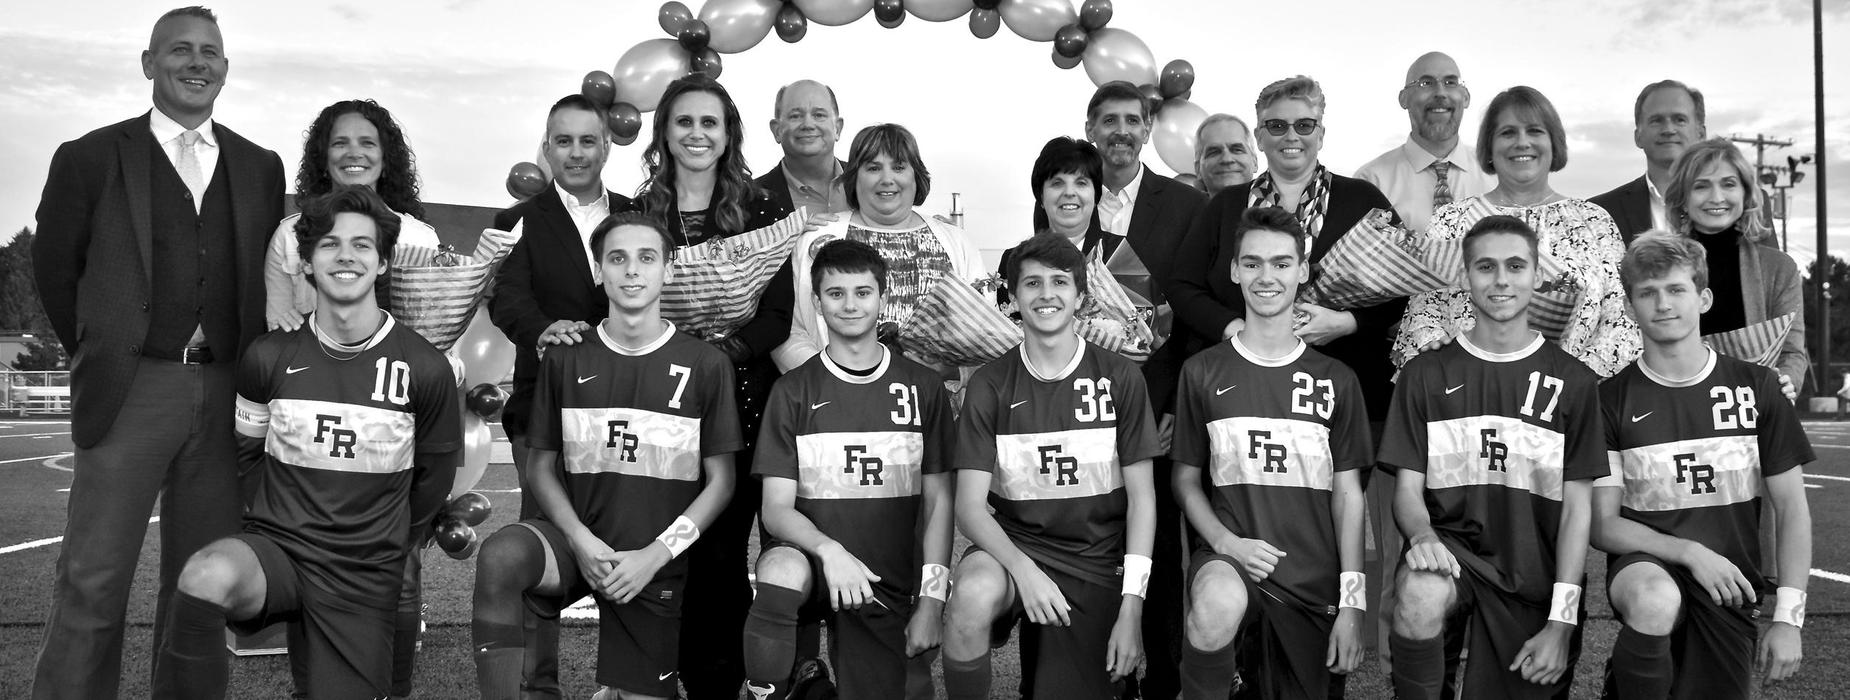 Boys Soccer team with families